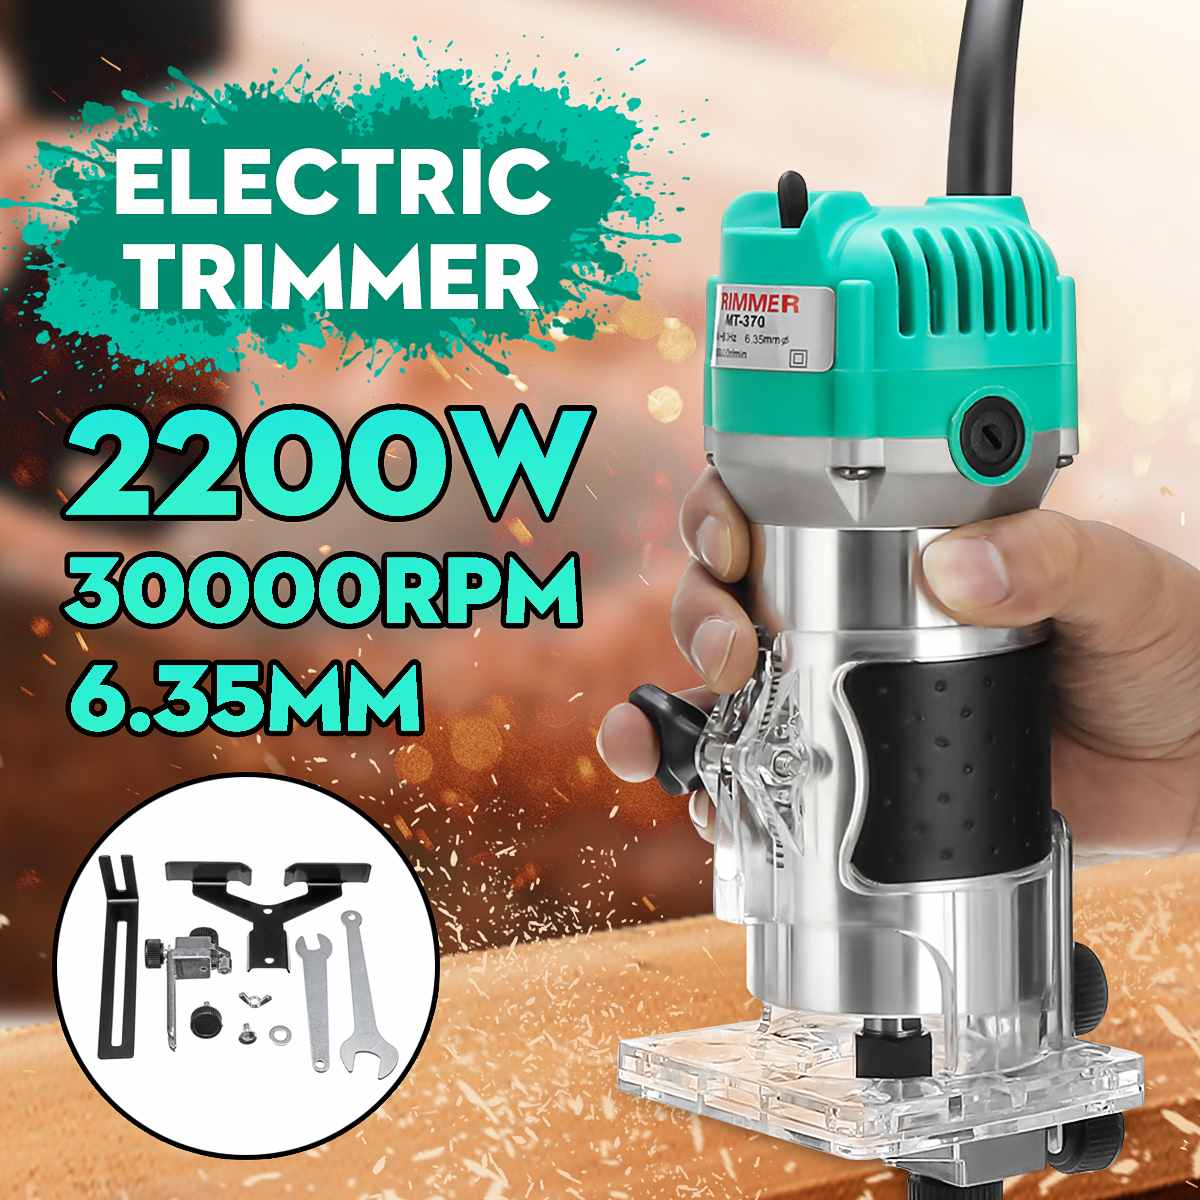 1/4 Inch 2200W Woodworking Electric Trimmer Wood Milling Engraving Slotting Trimming Machine Hand Carving Machine Wood Router